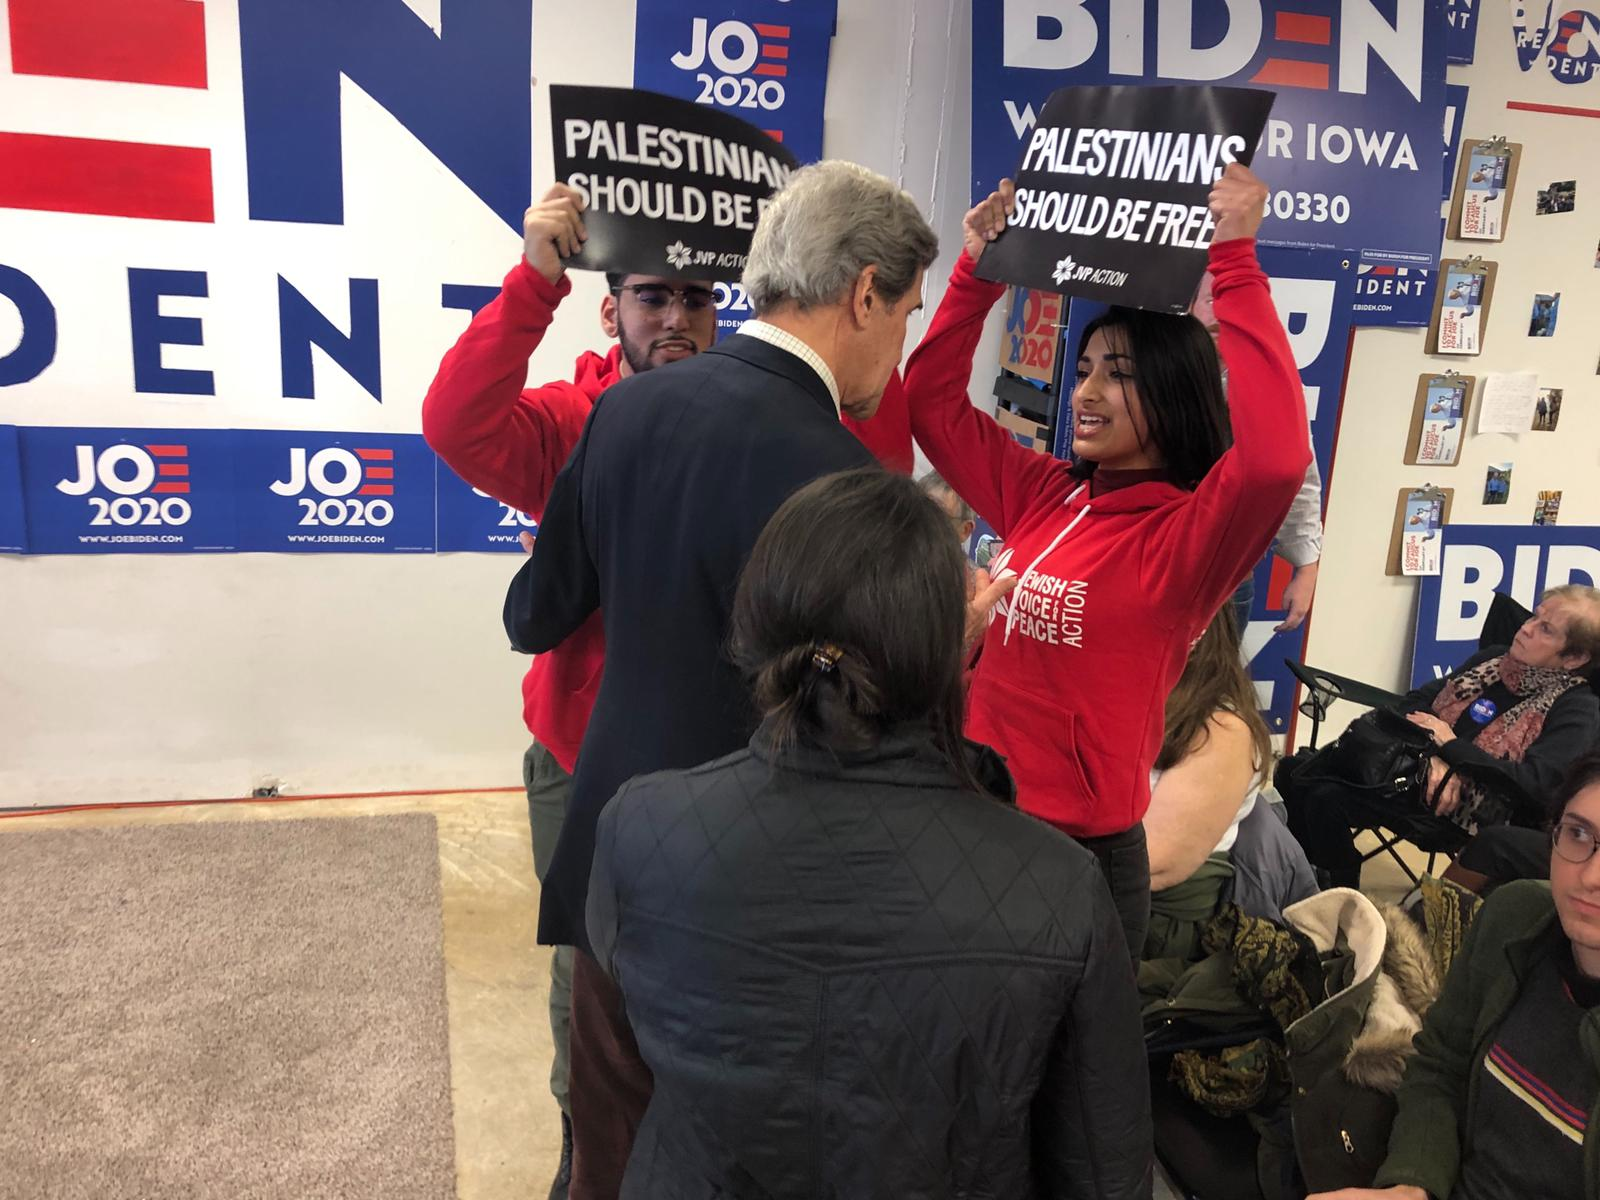 JVP Action activists interrupt former Secretary of State John Kerry at a campaign event supporting Joe Biden in Sioux City, Iowa, January 7, 2019. (Courtesy of Jewish Voice for Peace Action)